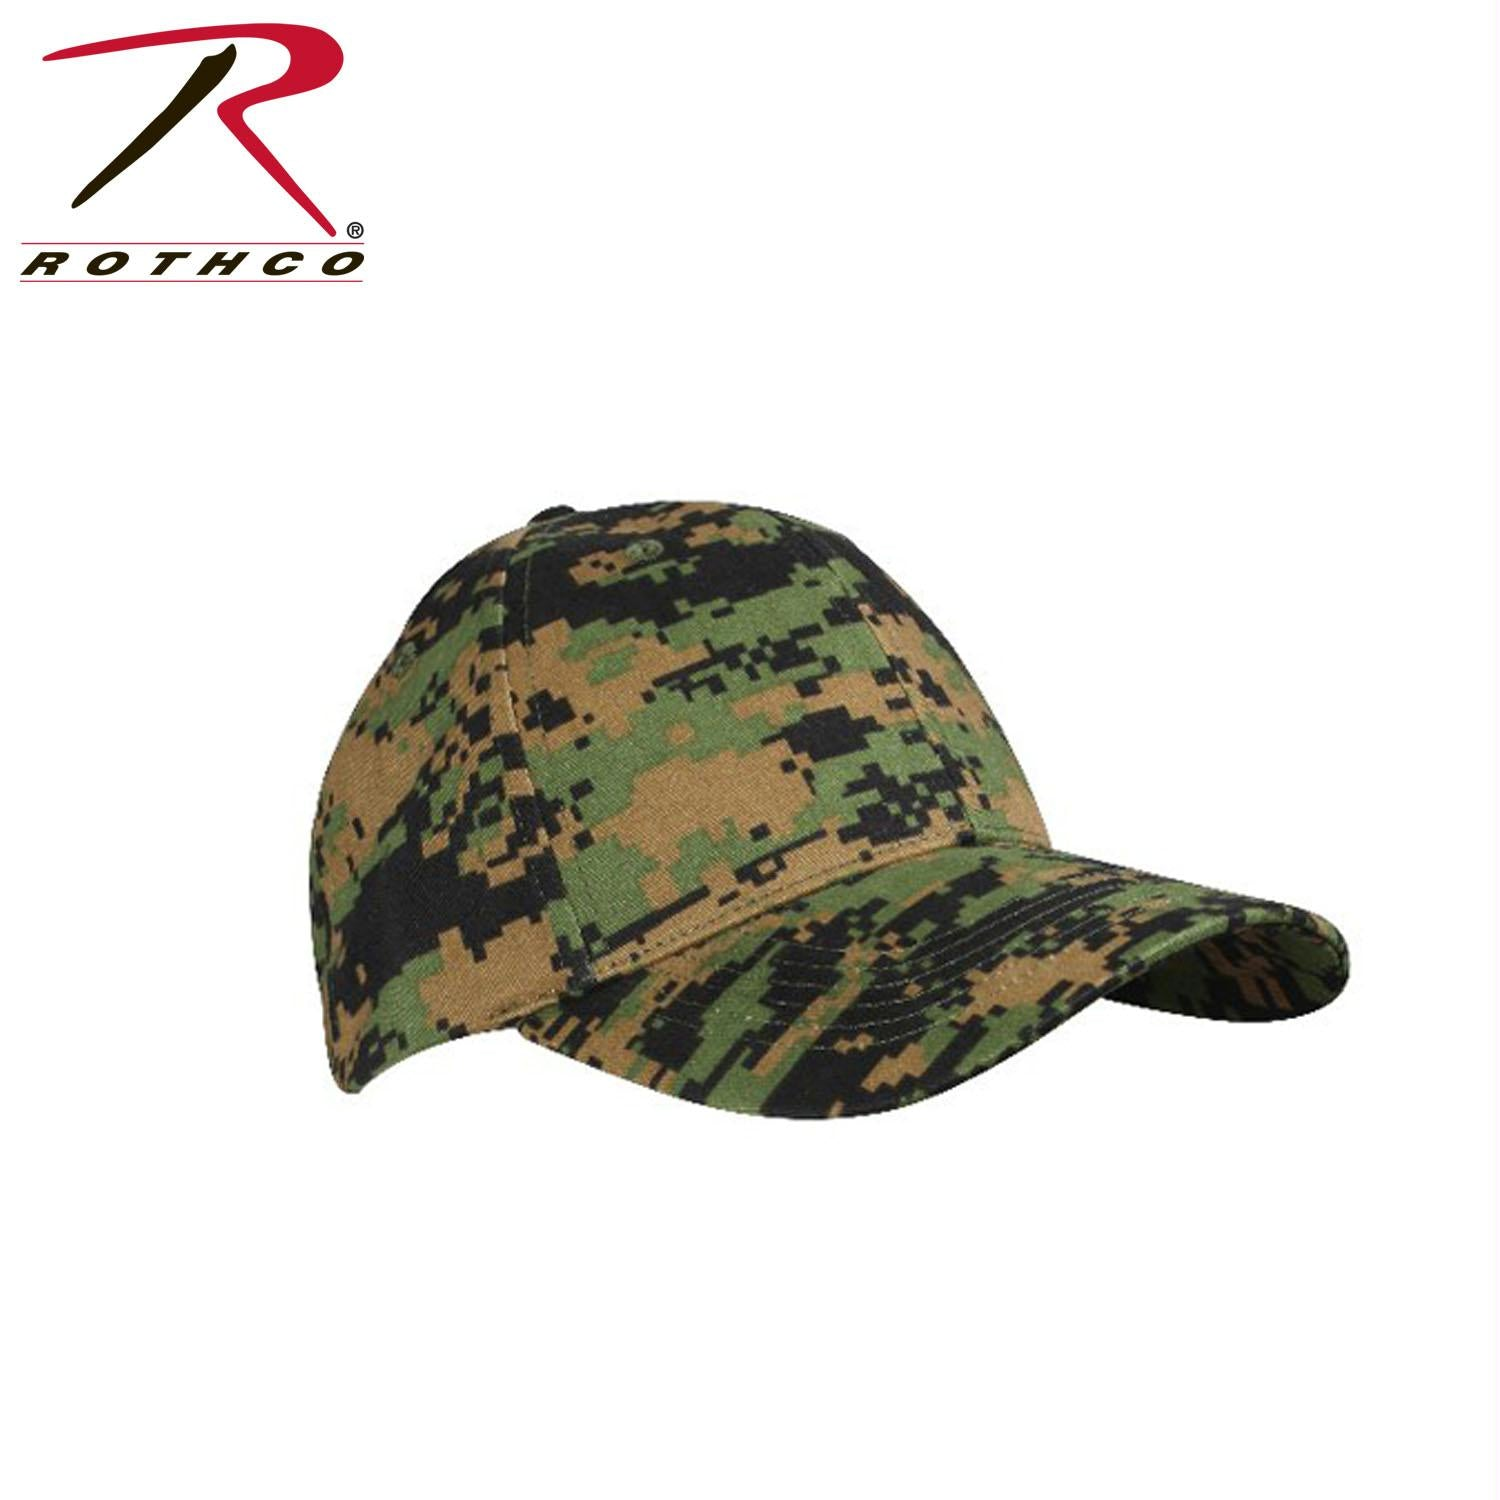 Rothco Supreme Camo Low Profile Cap - Woodland Digital Camo / One Size